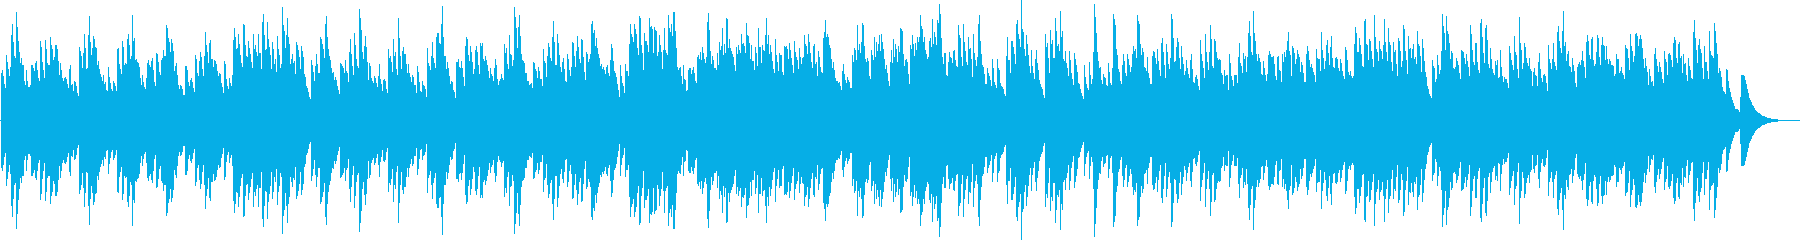 Dance of Time / Ponchi Elli (Music Box)'s reproduced waveform